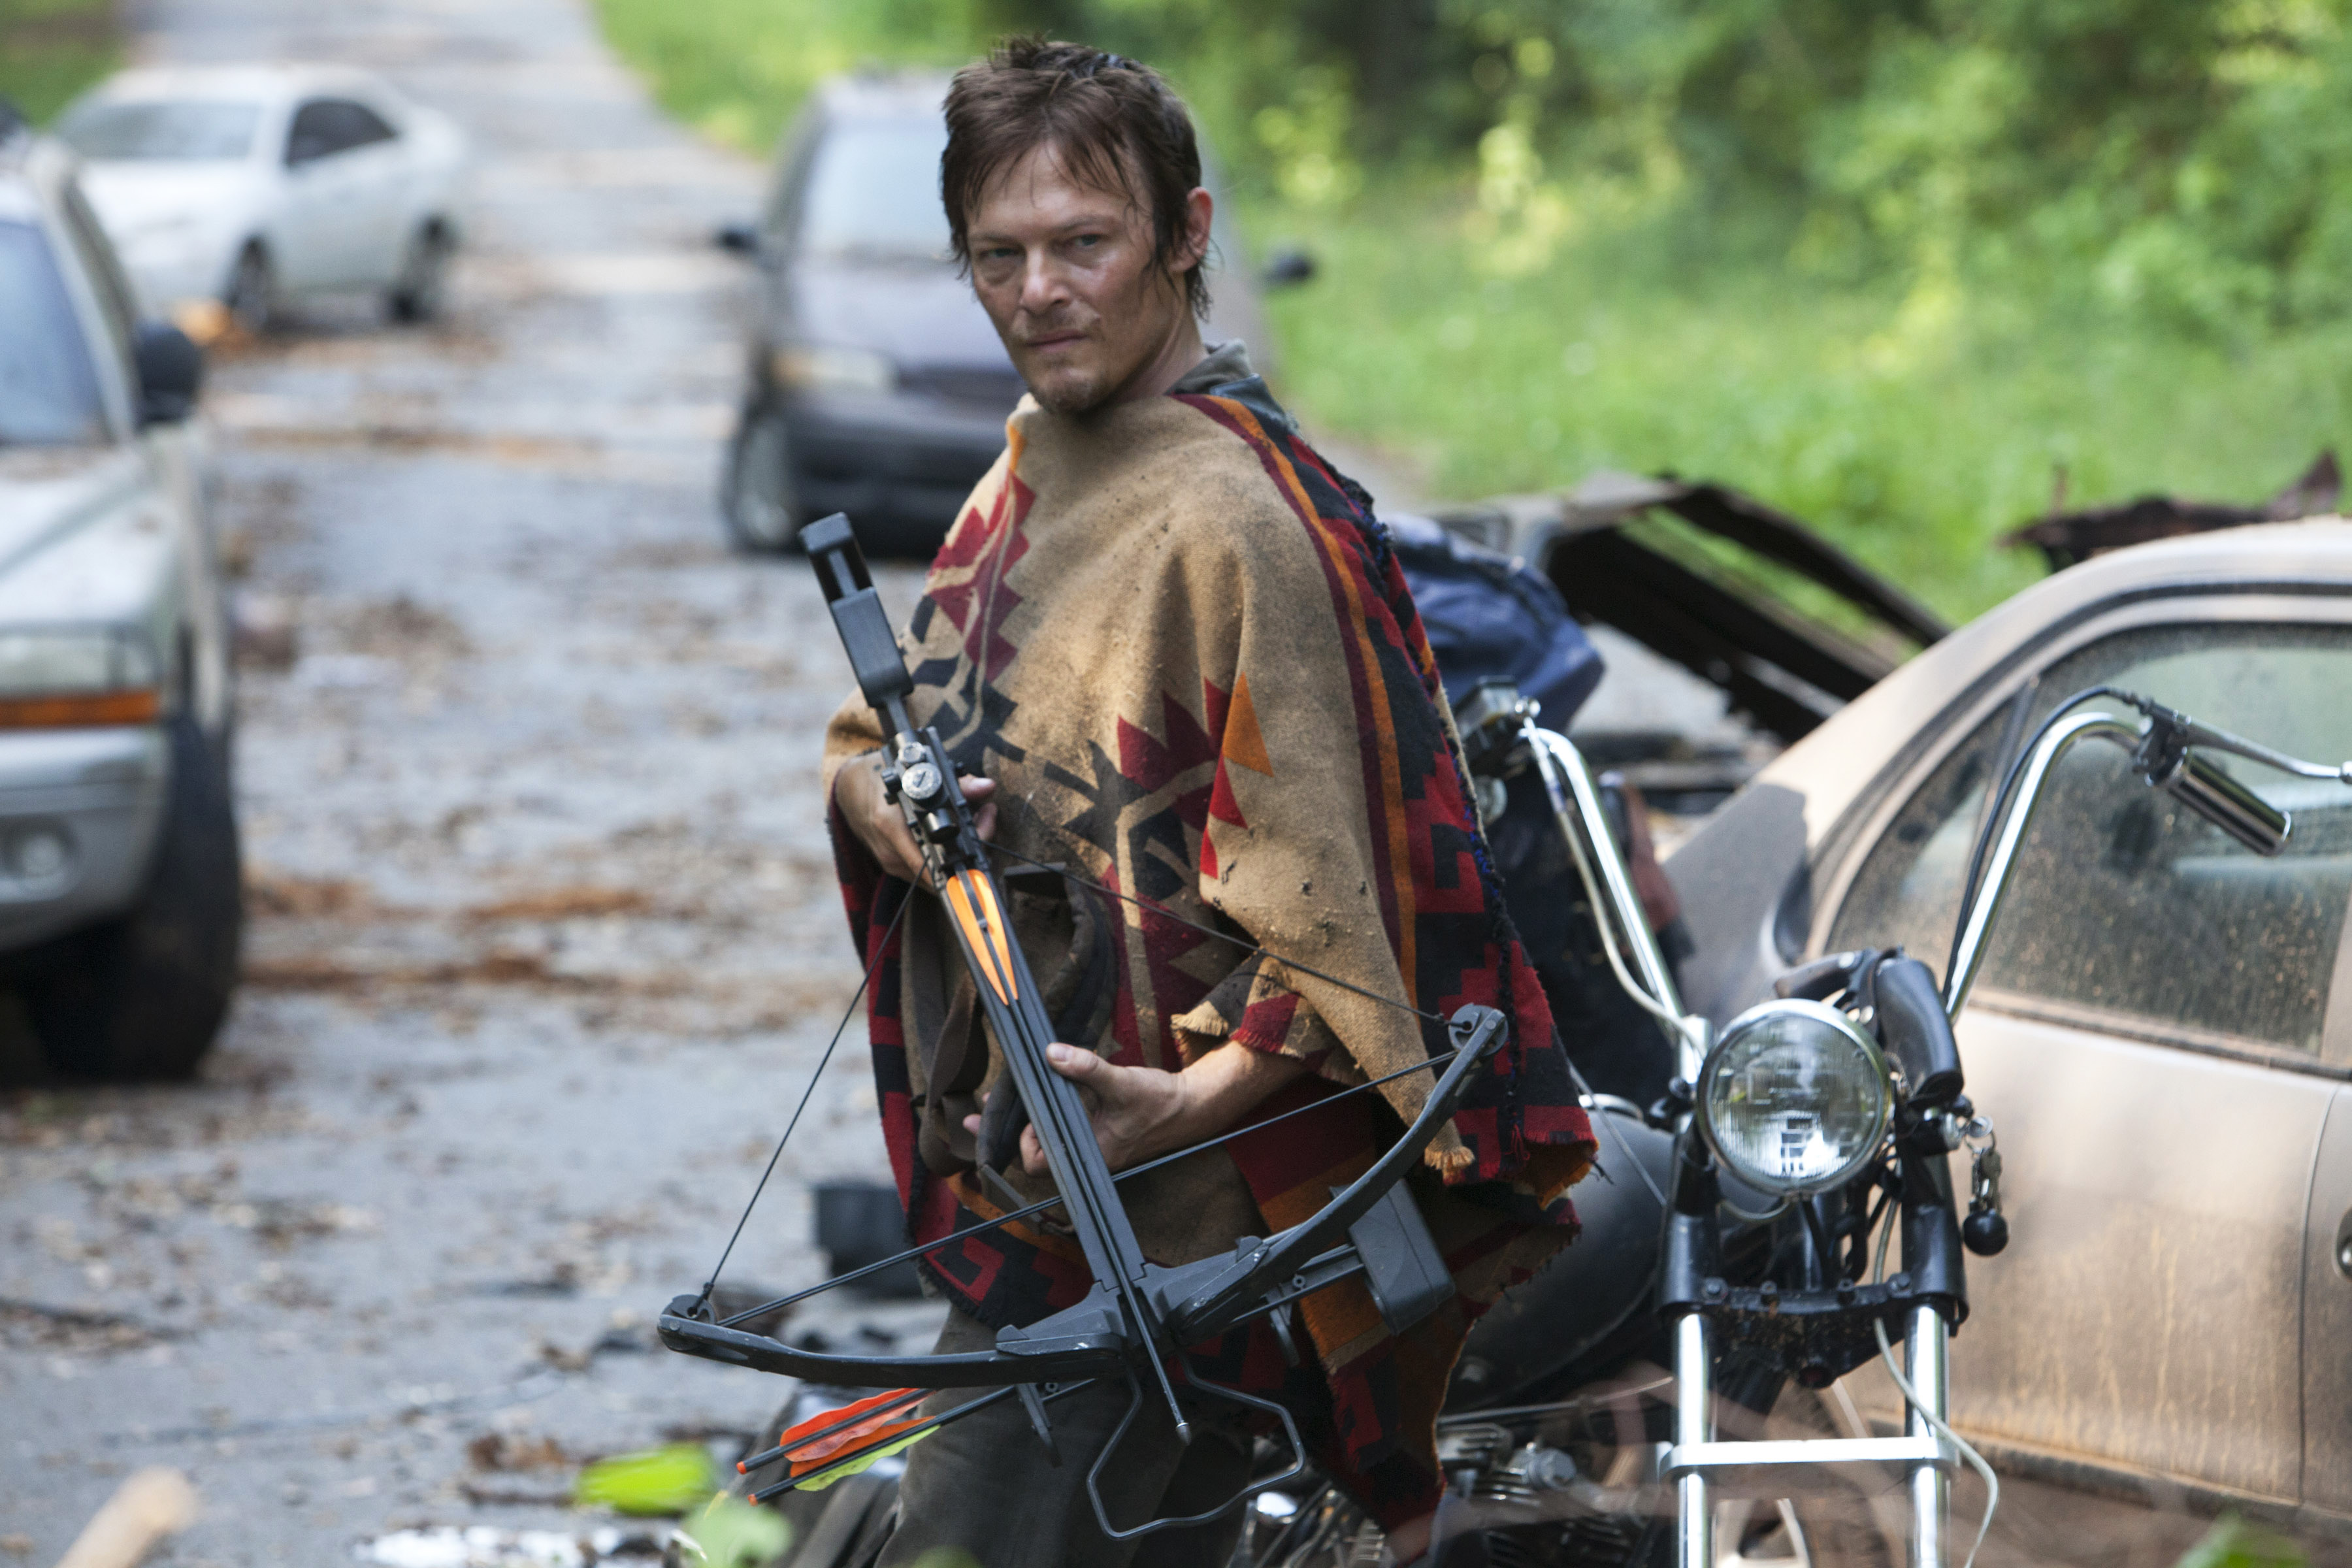 Norman Reedus opens up about 'The Walking Dead,' his rabid fans, and landing the role of a lifetime